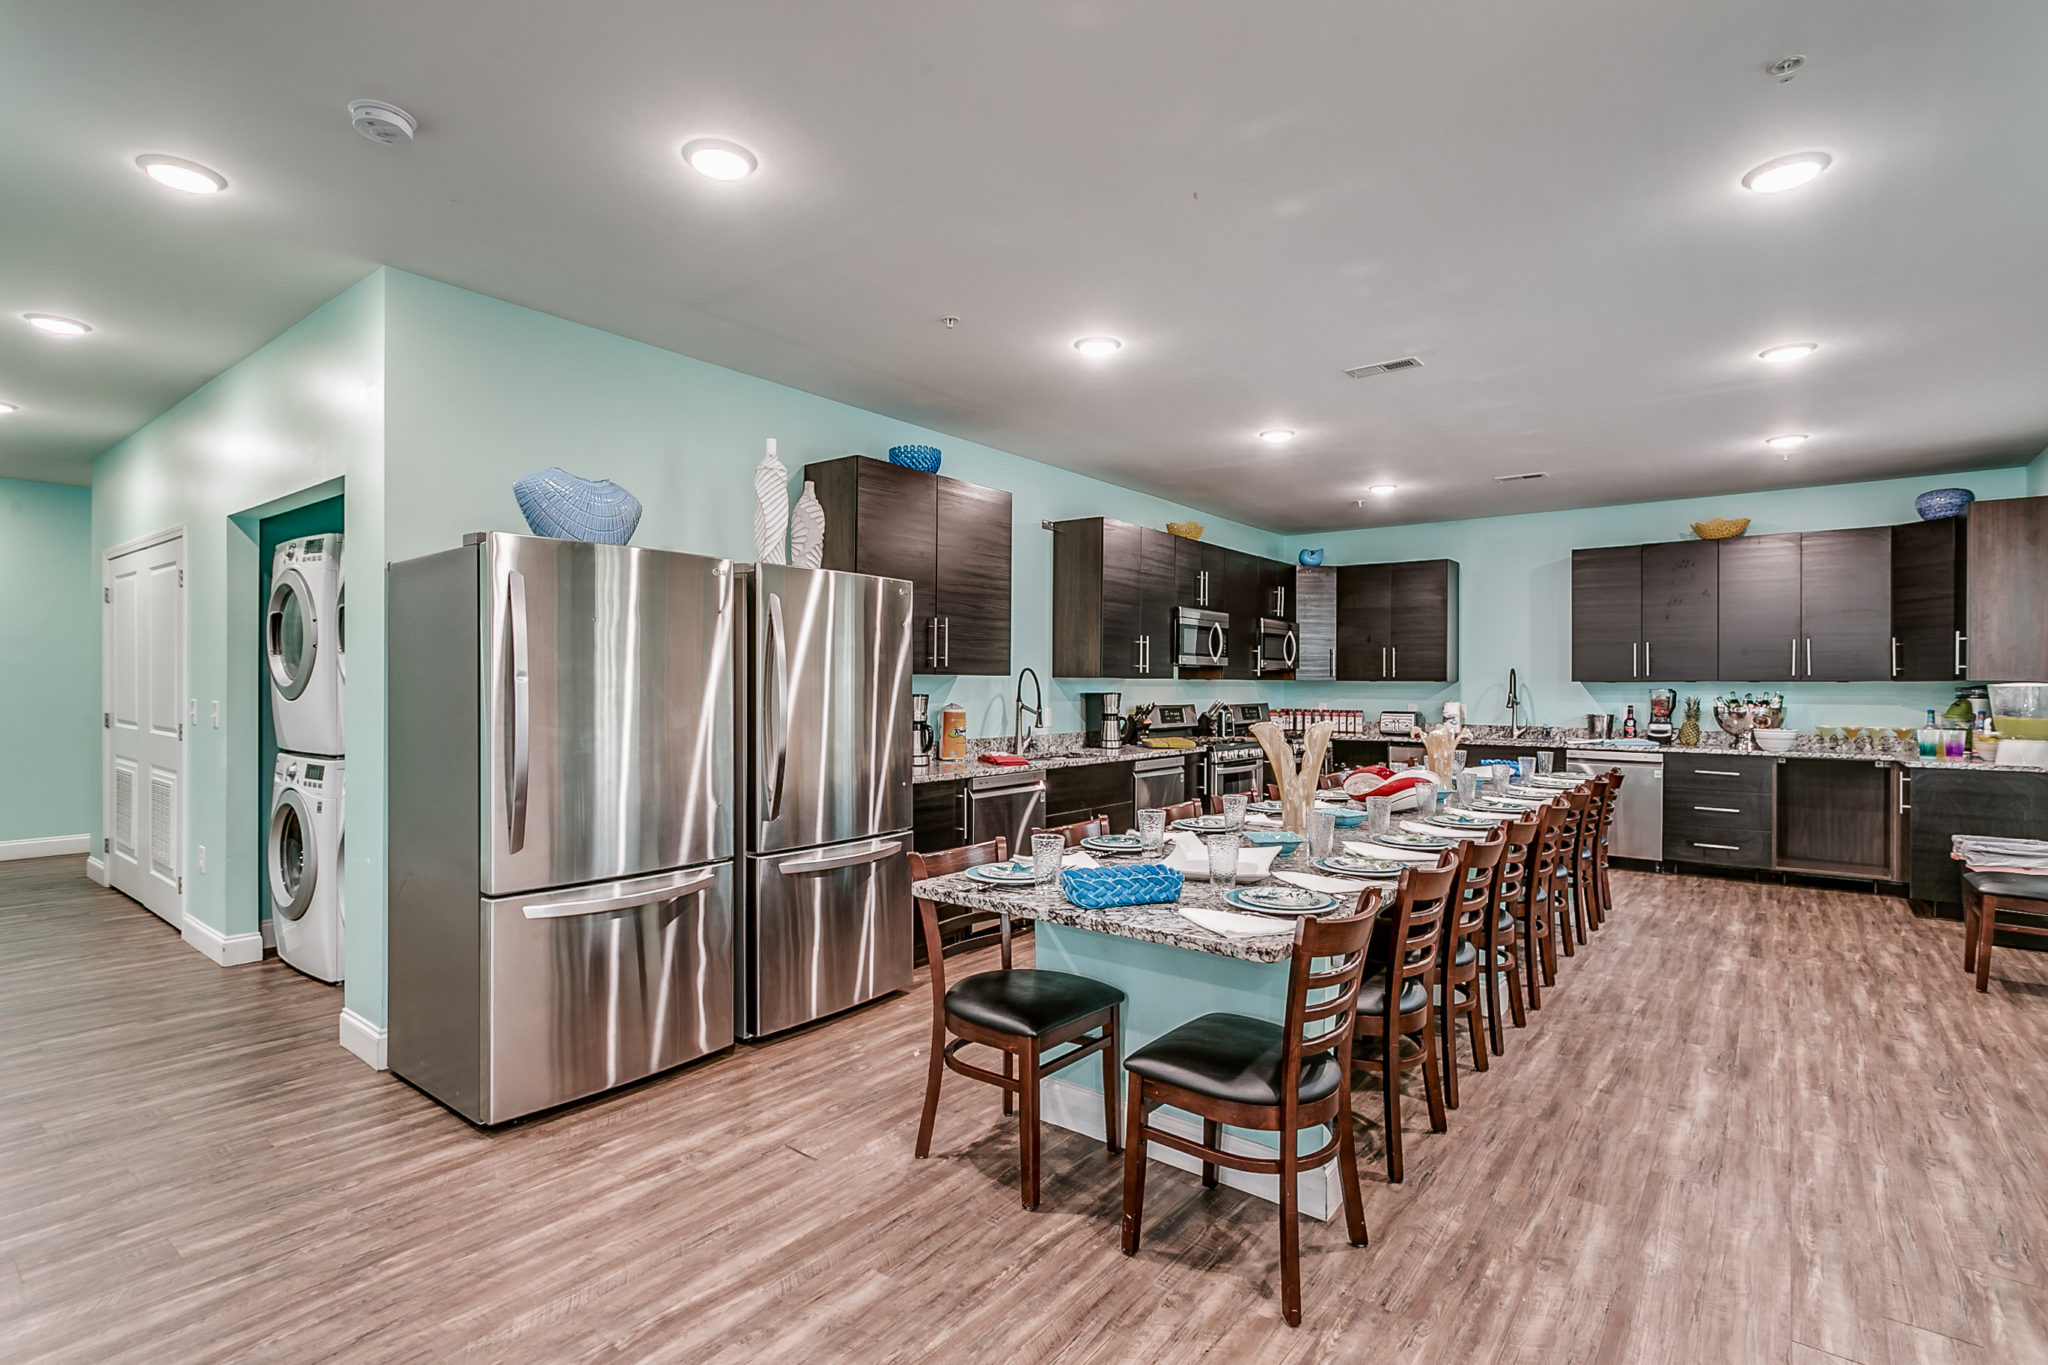 204 54th Ave - Unit B kitchen with long dining table.